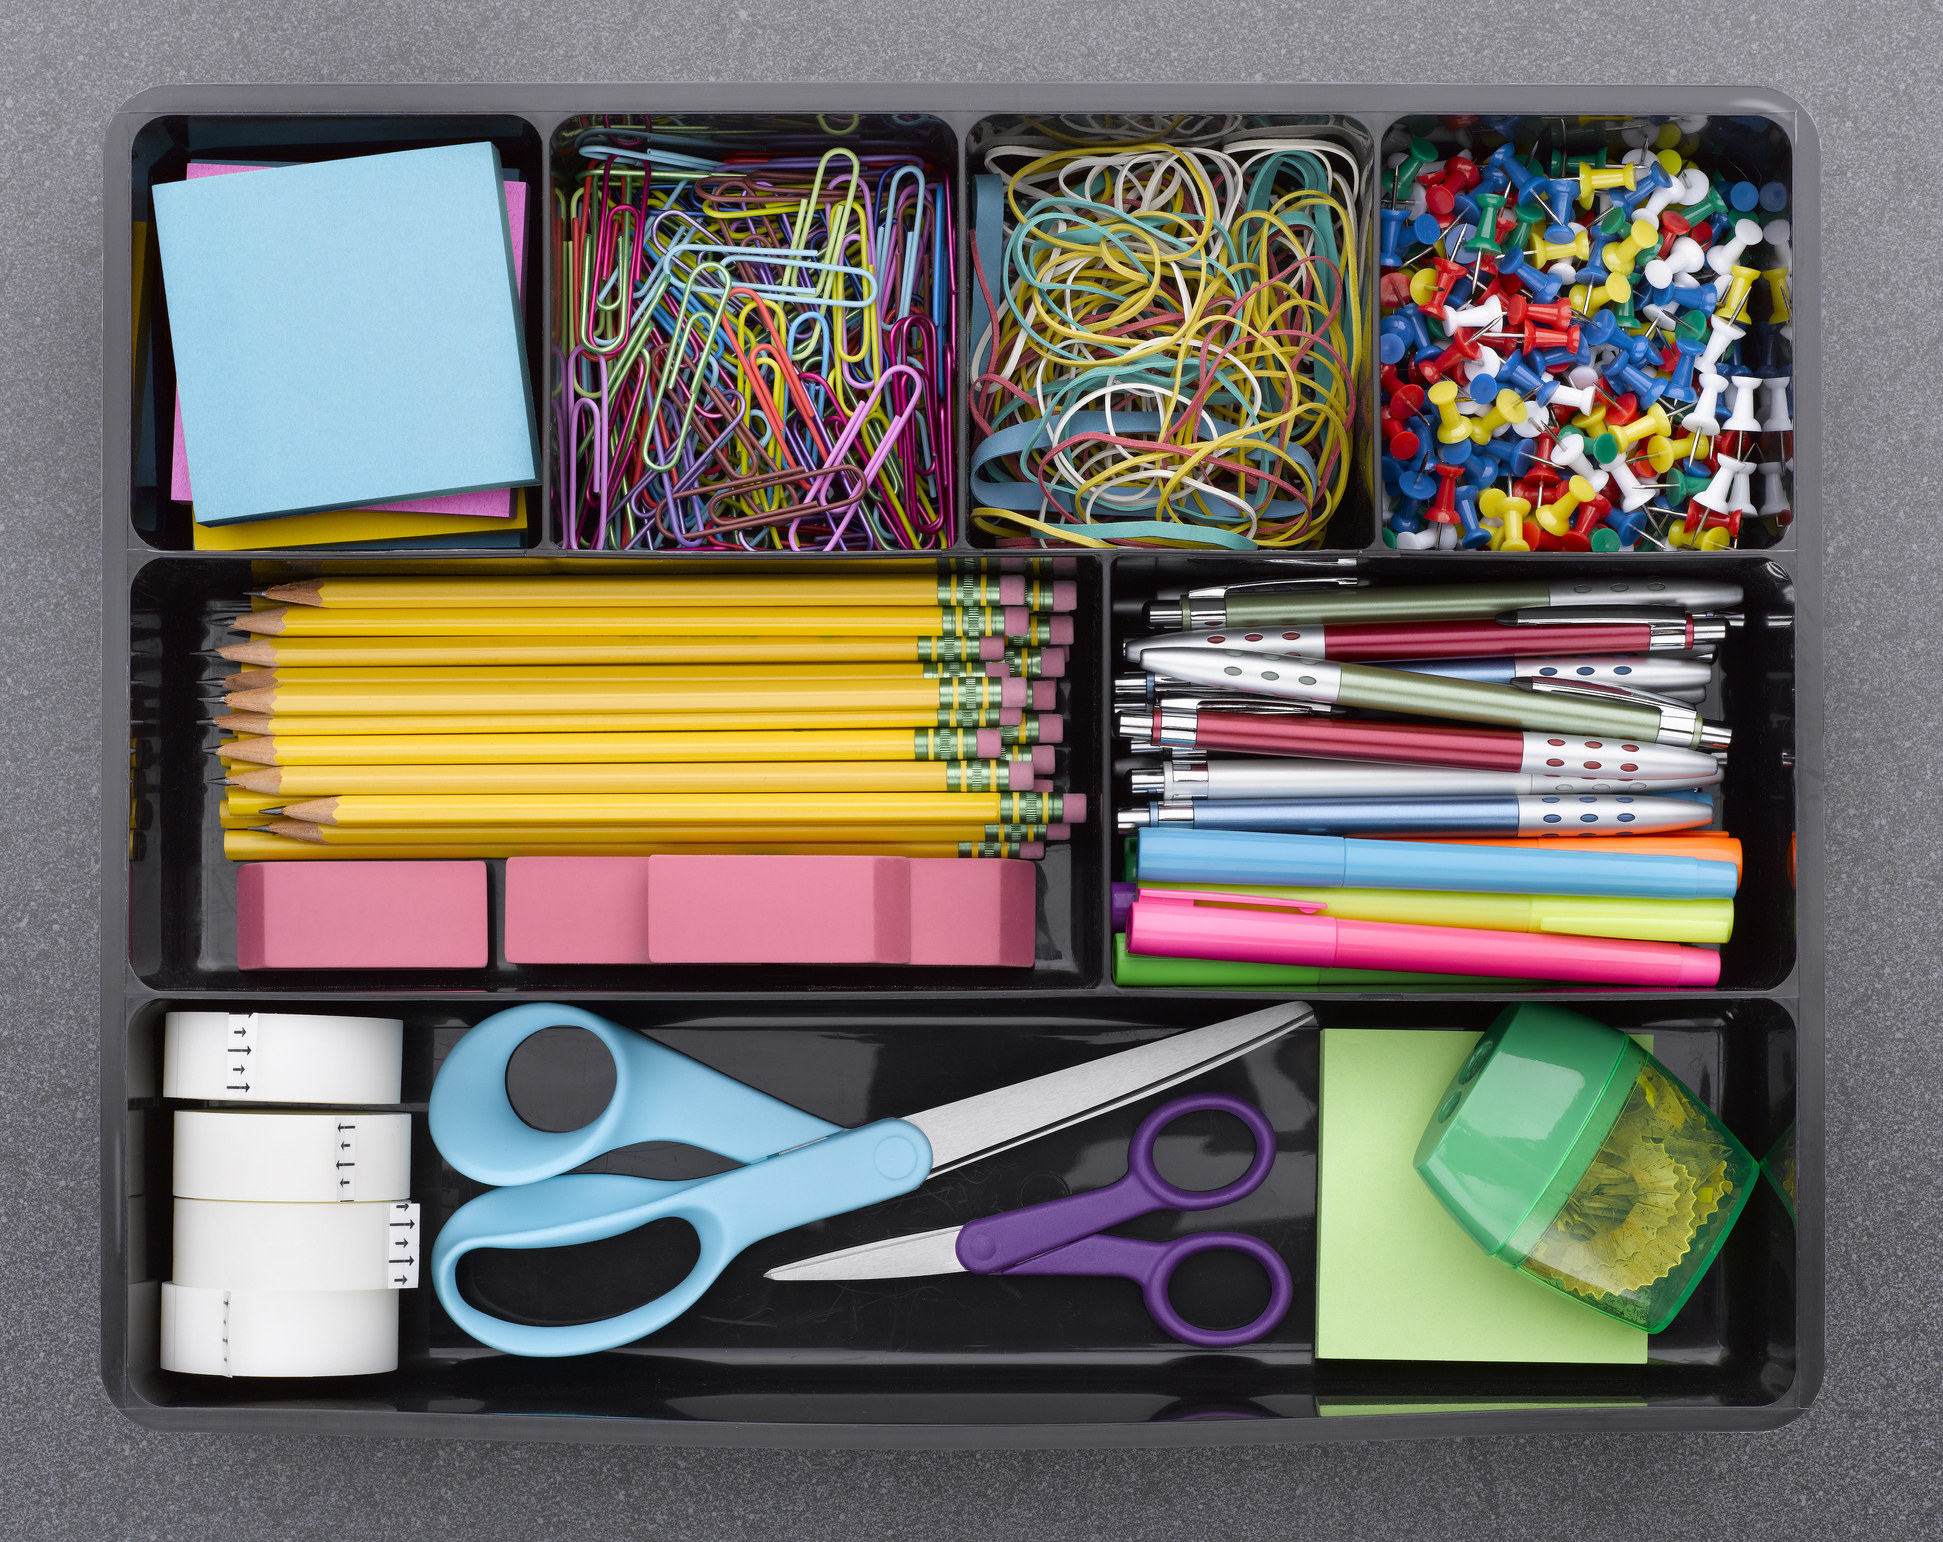 Very organized office supplies in different sections